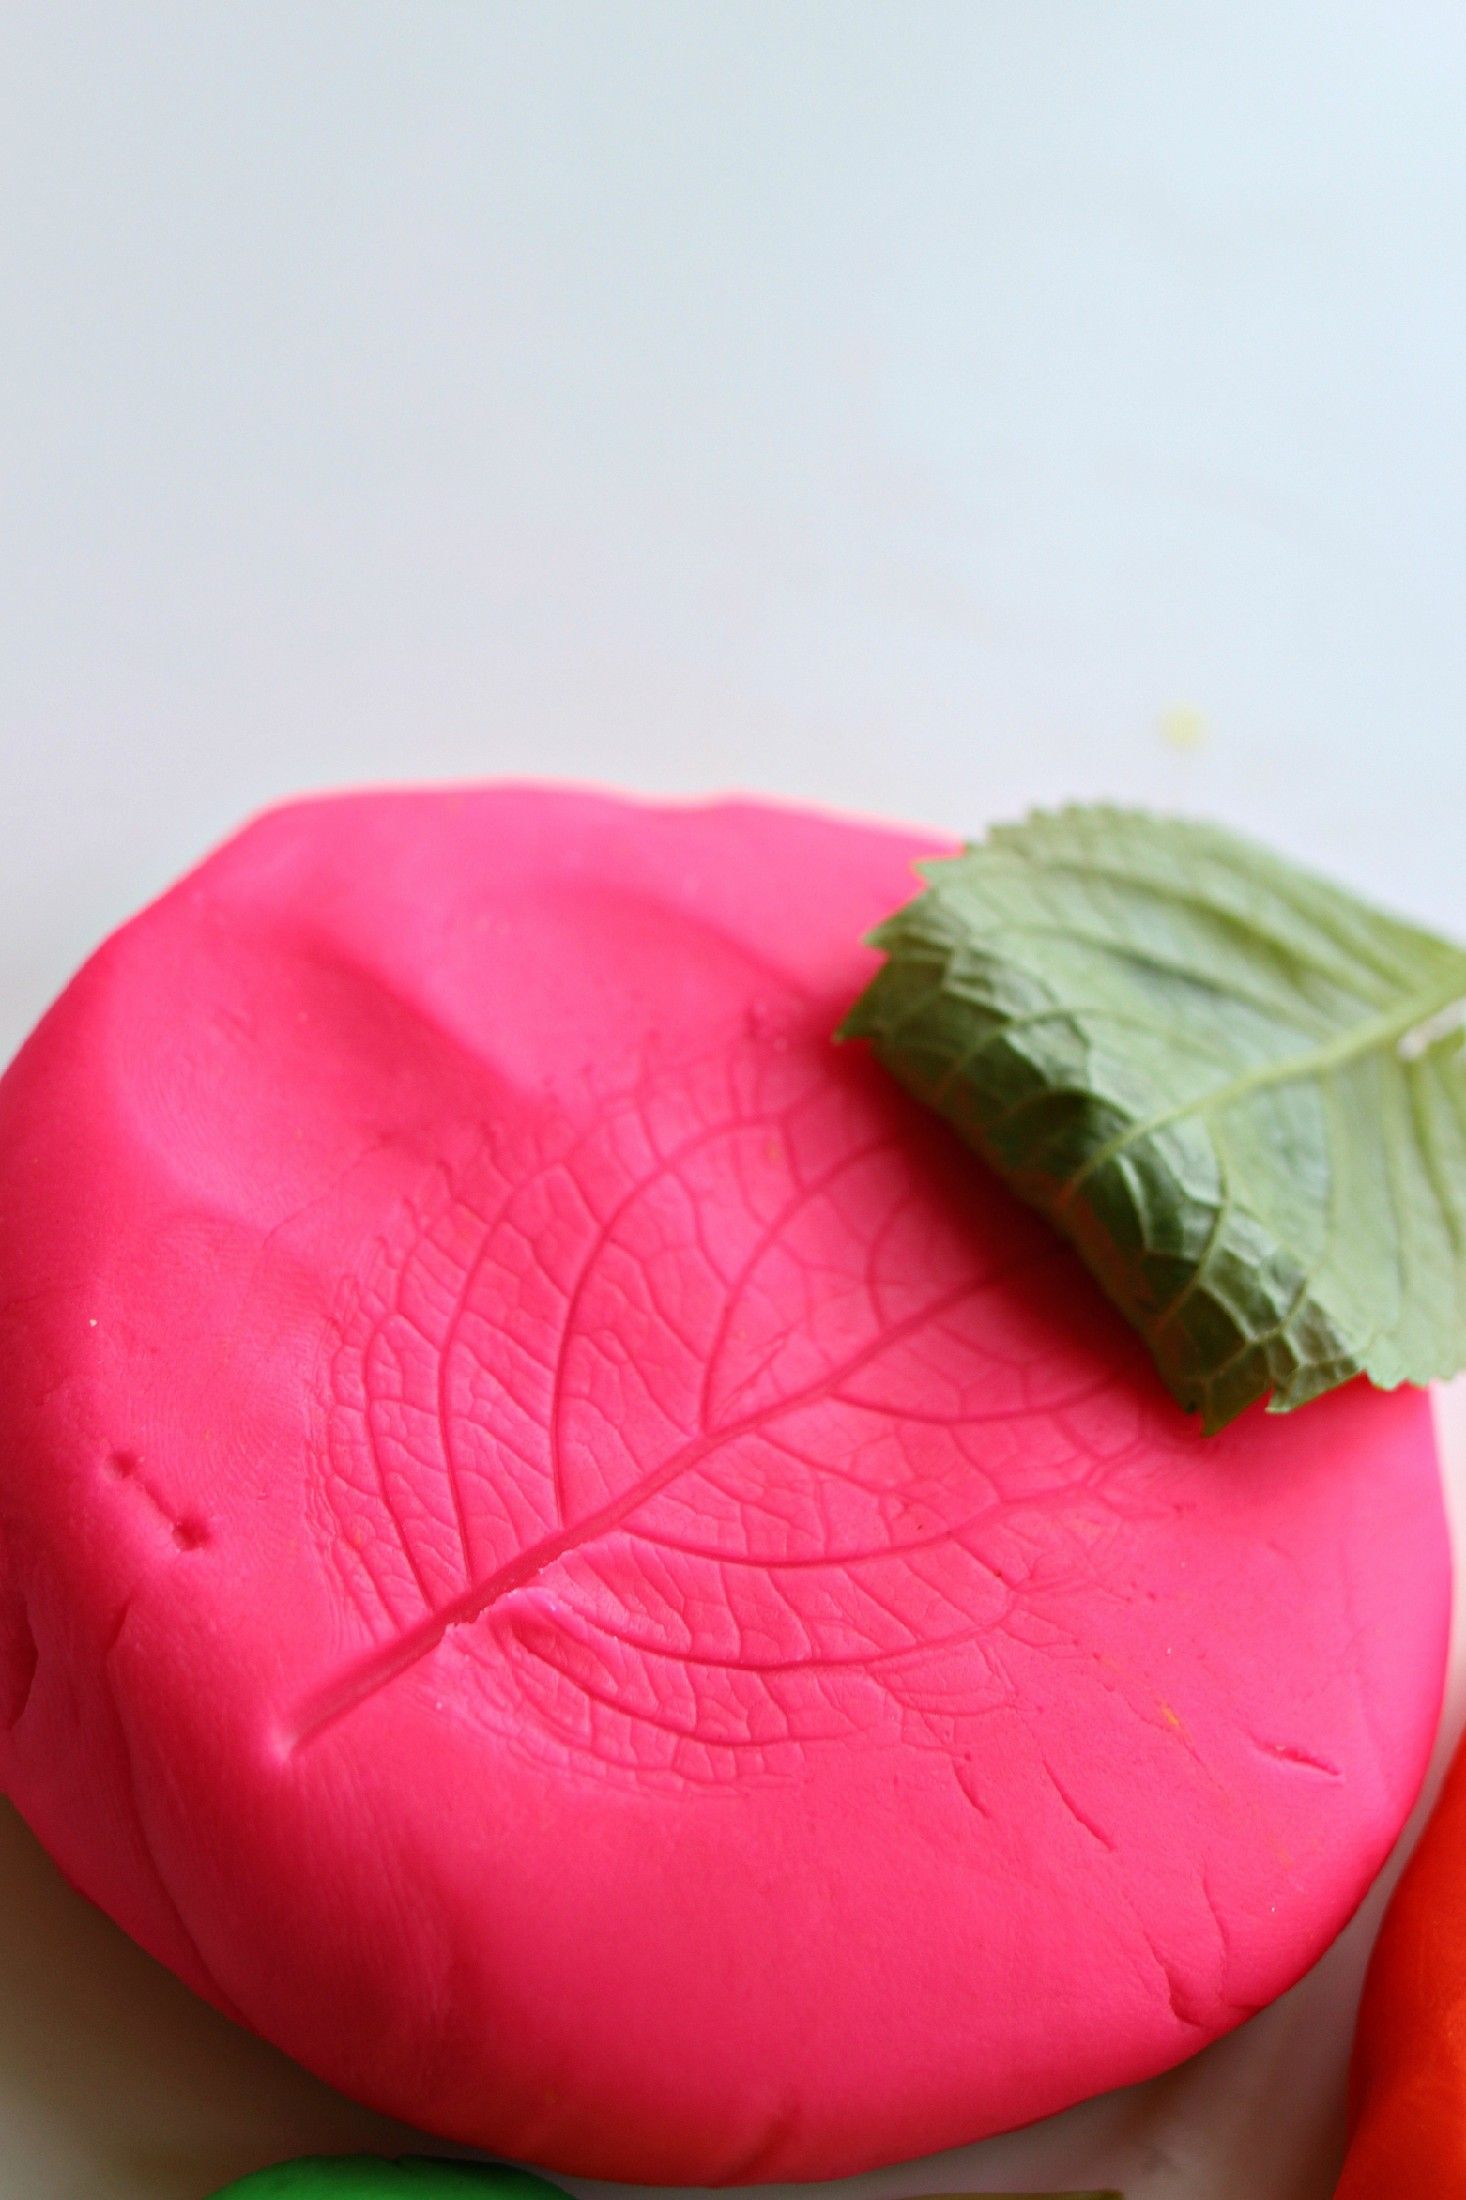 Nature prints – go on a nature hunt and come back and explore it by making prints on the Play-Doh compound//